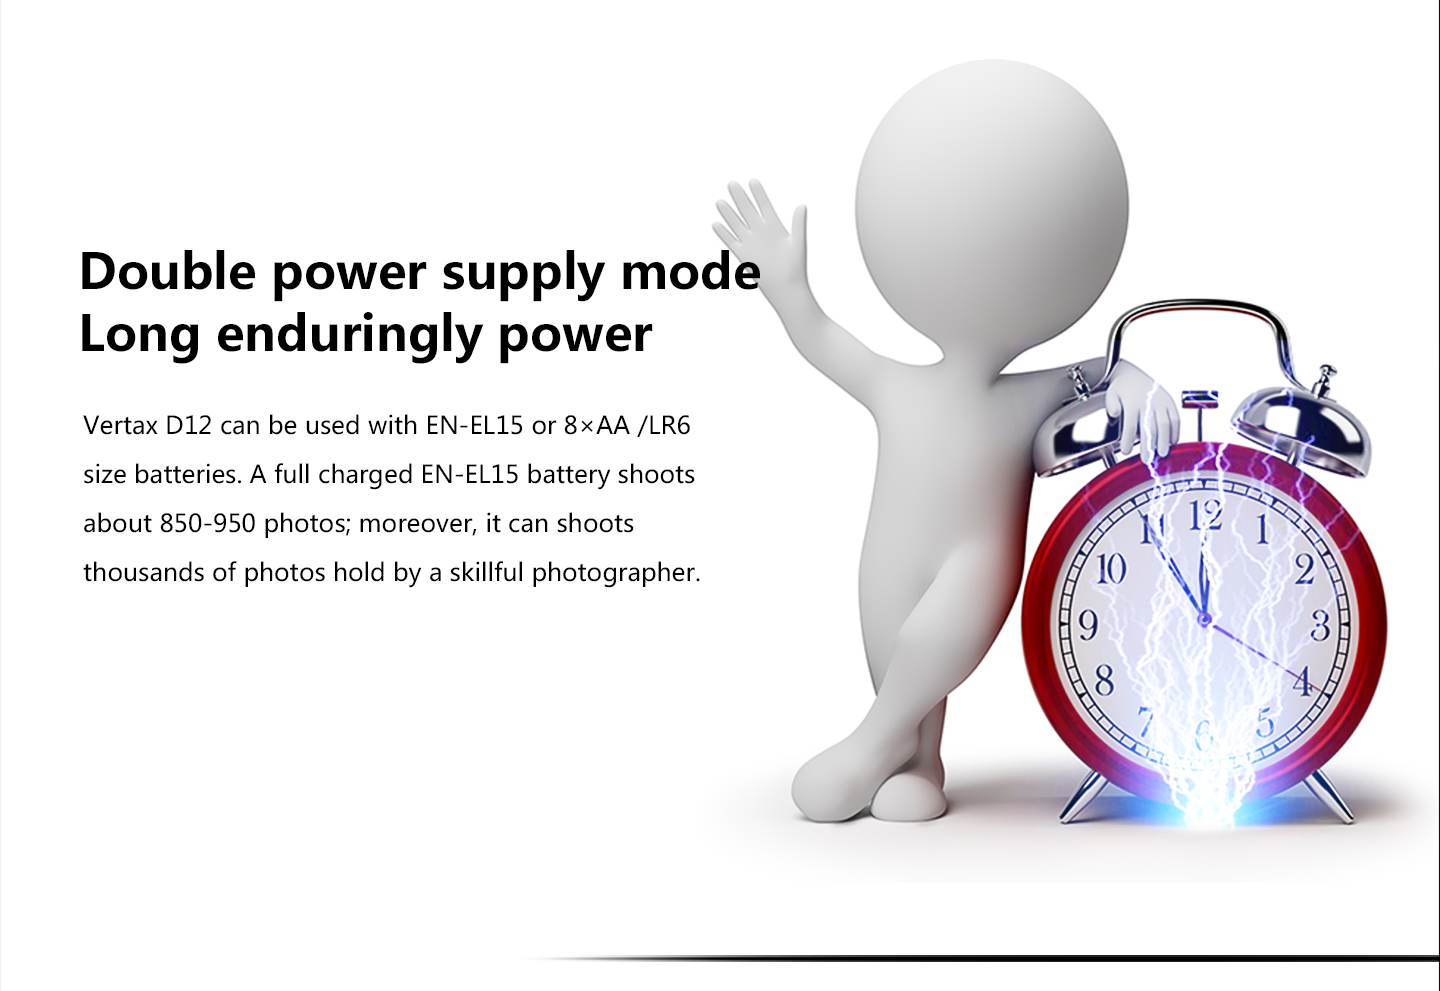 Double power supply mode Long enduringly power